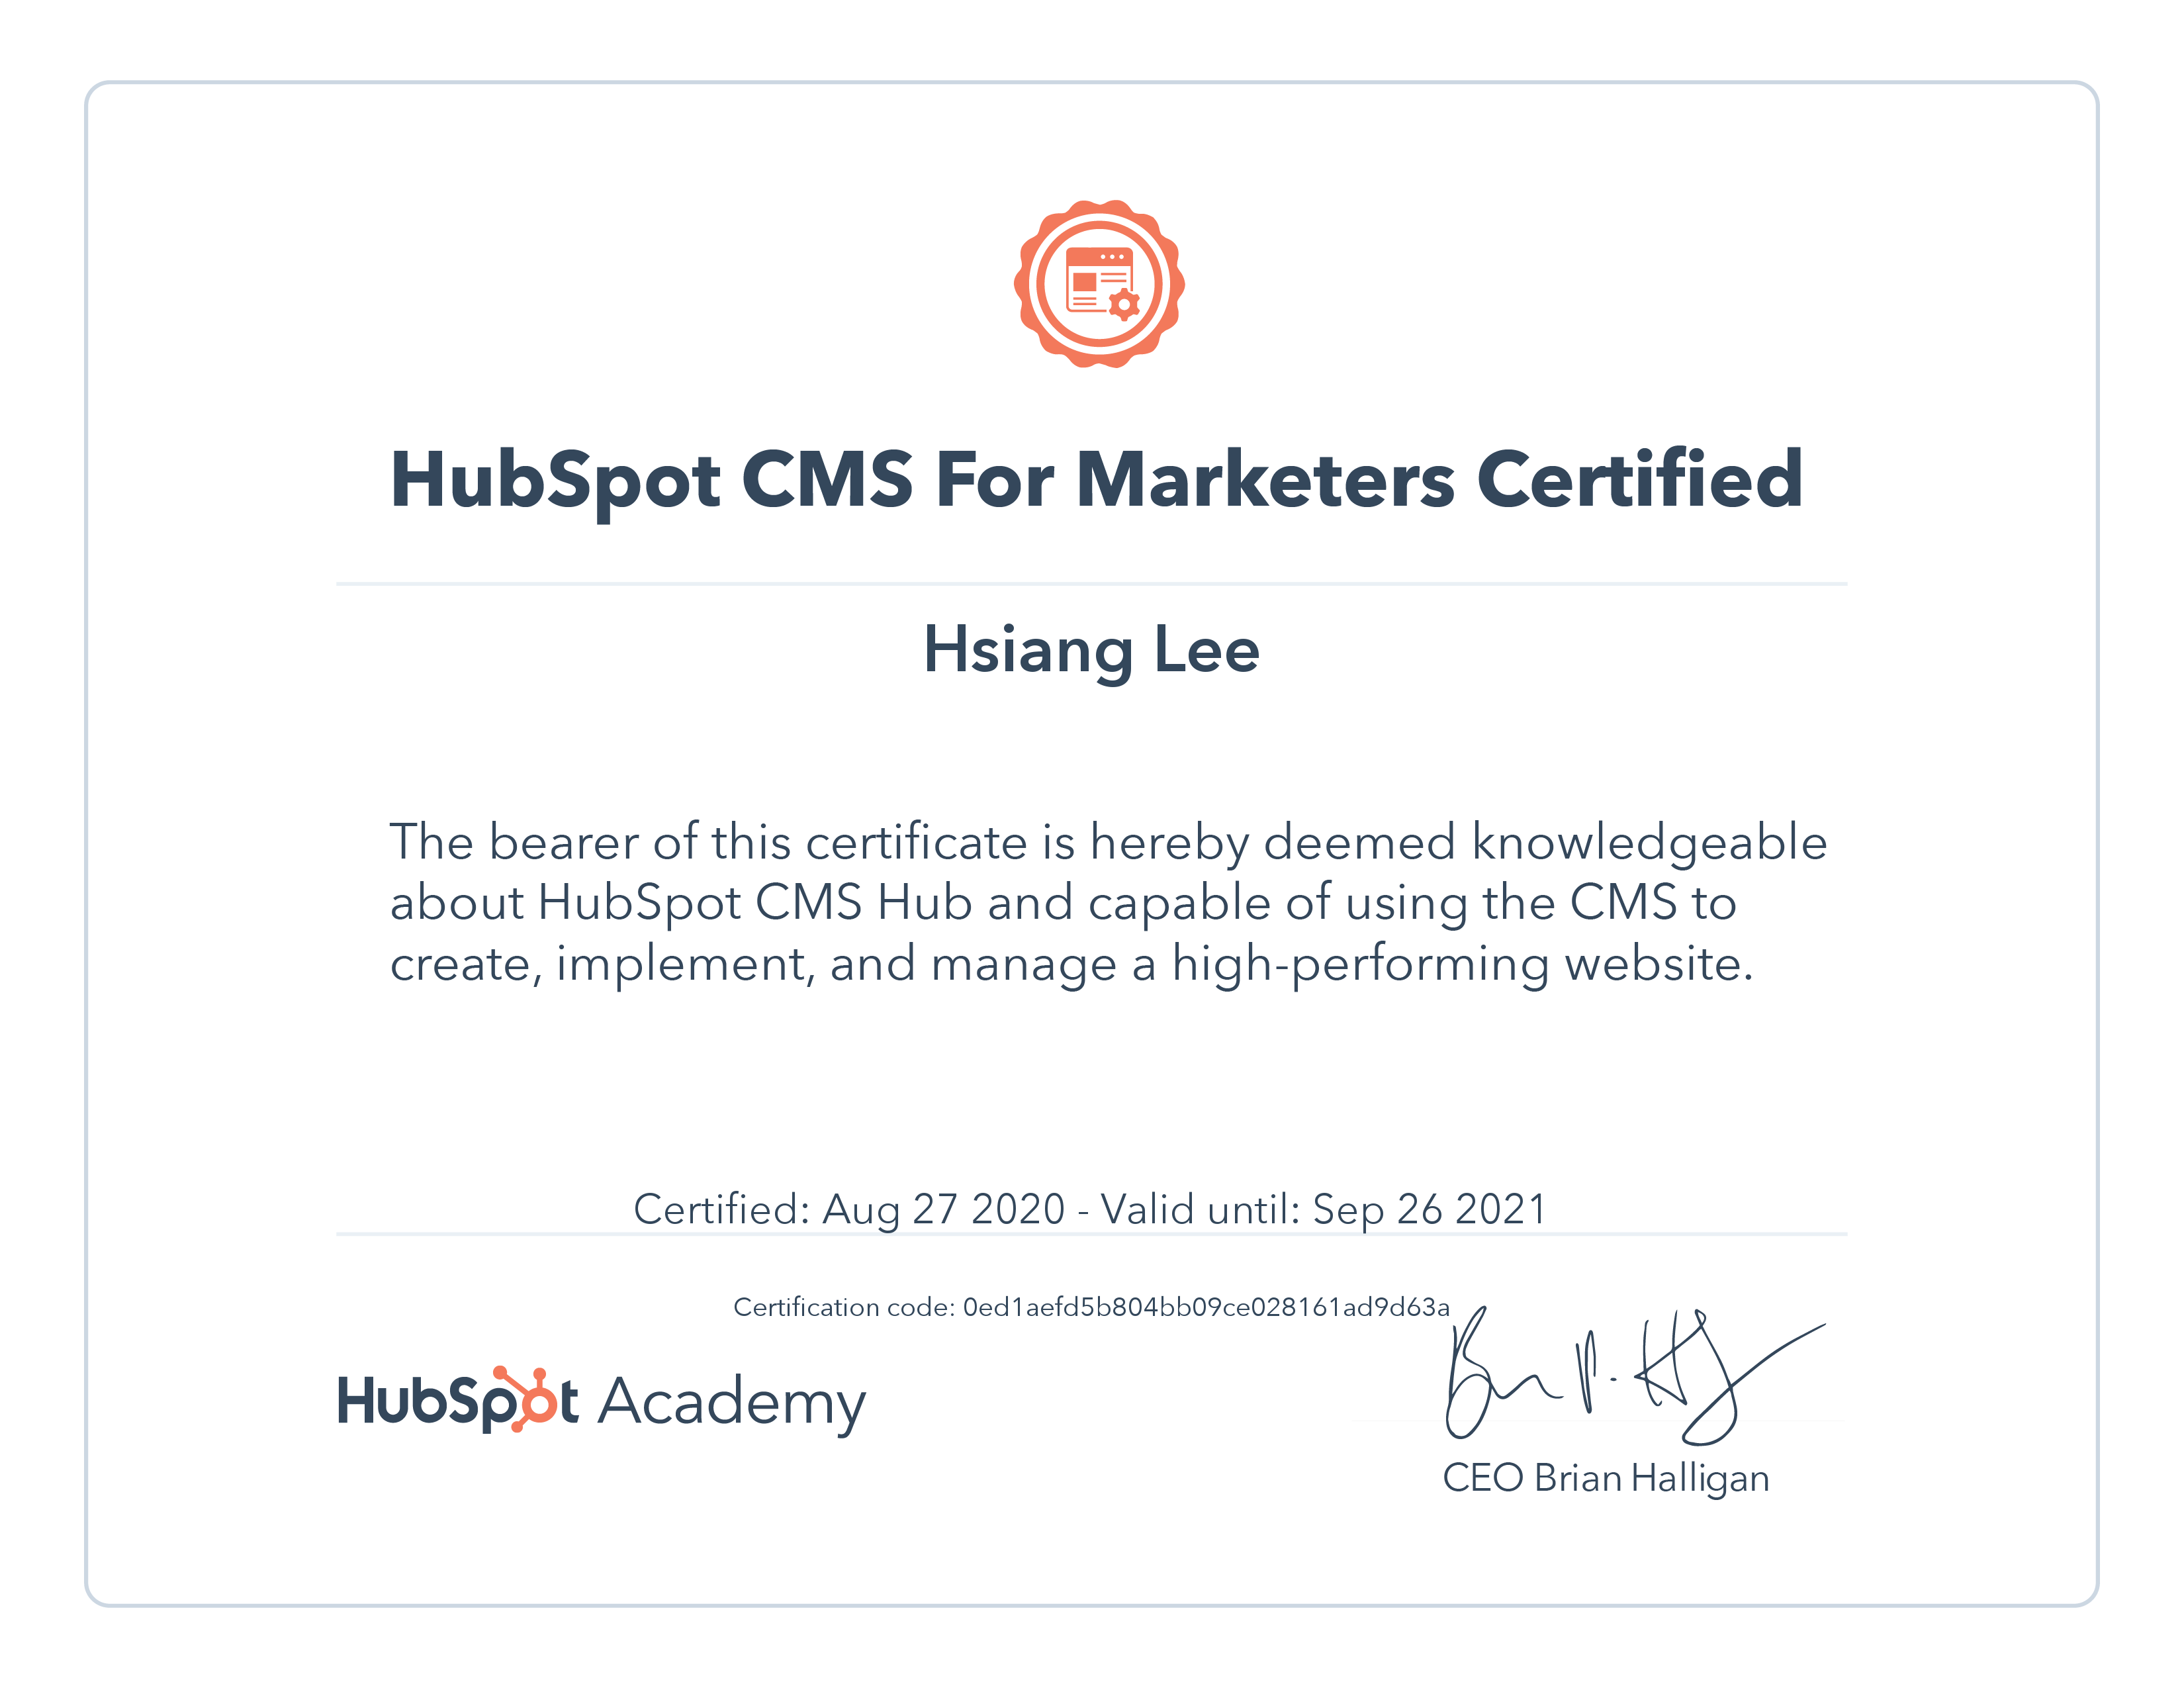 hubspot-cms-for-marketers-certified_hsiang